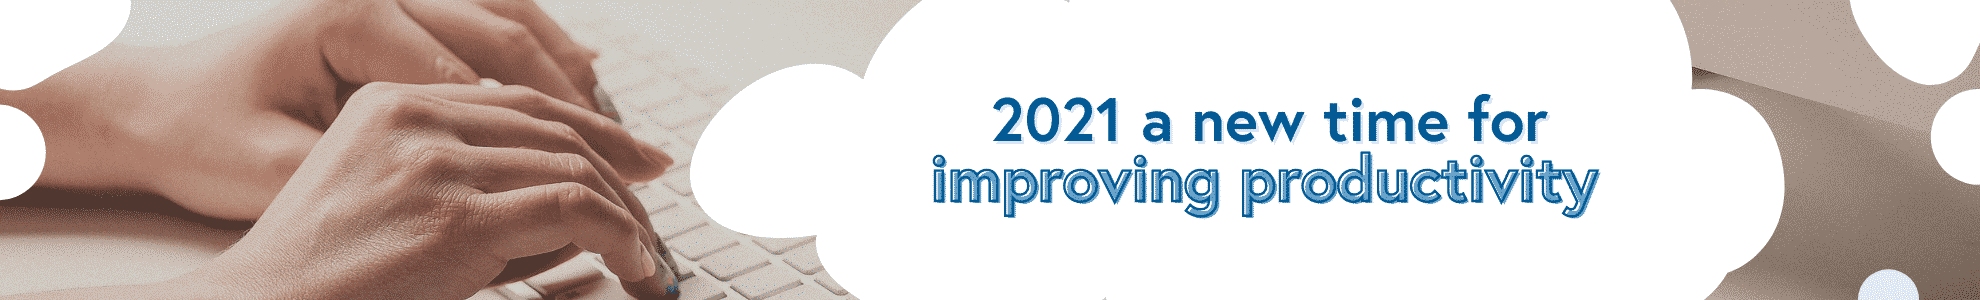 2021: a new time for improving productivity